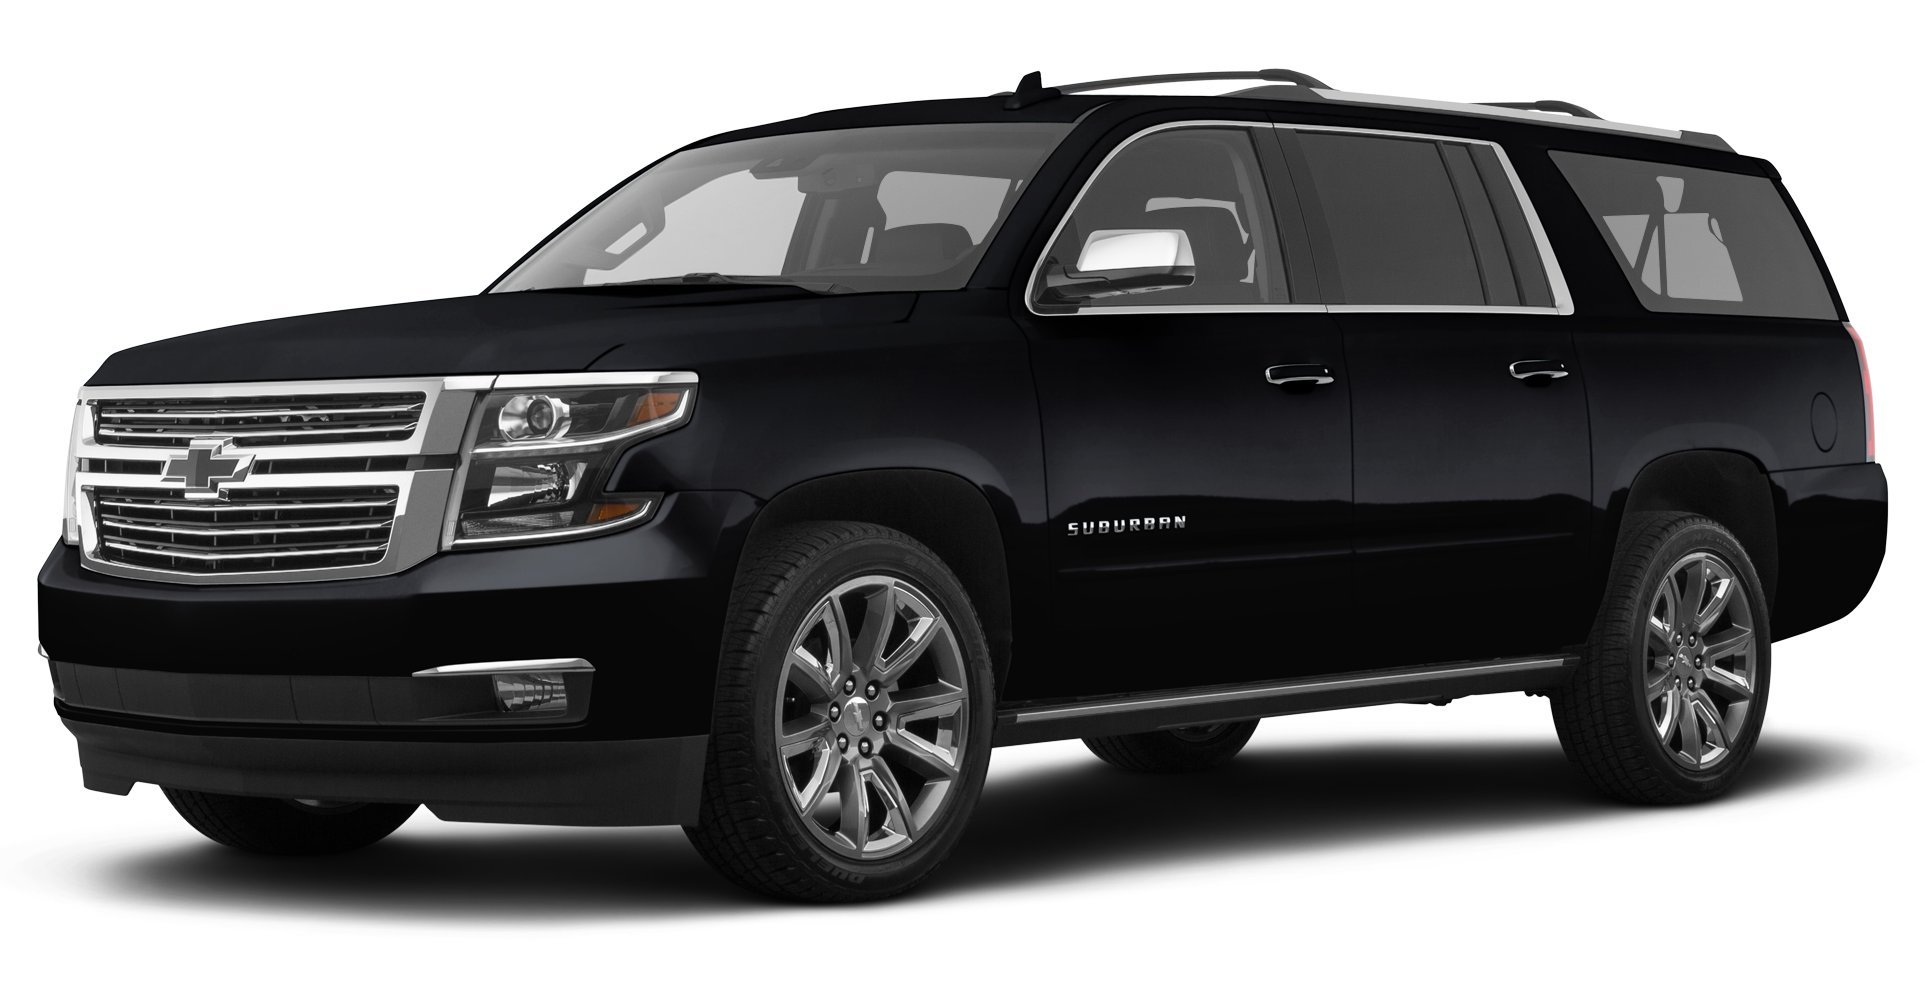 2017 gmc yukon xl reviews images and specs vehicles. Black Bedroom Furniture Sets. Home Design Ideas